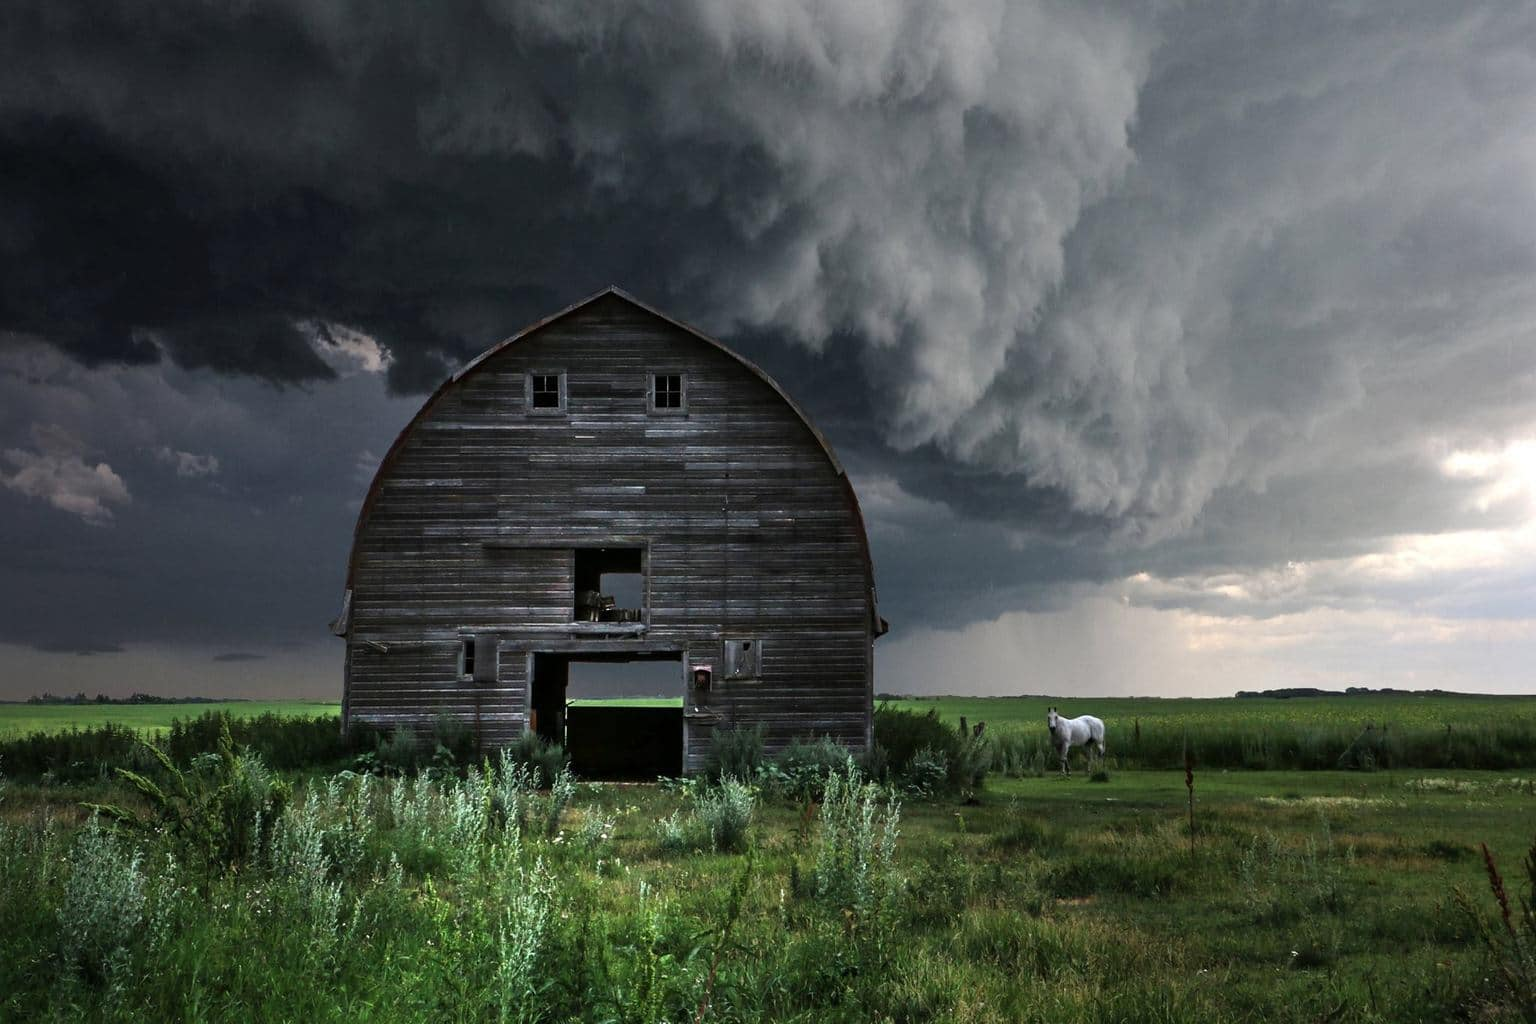 Ominous Barn